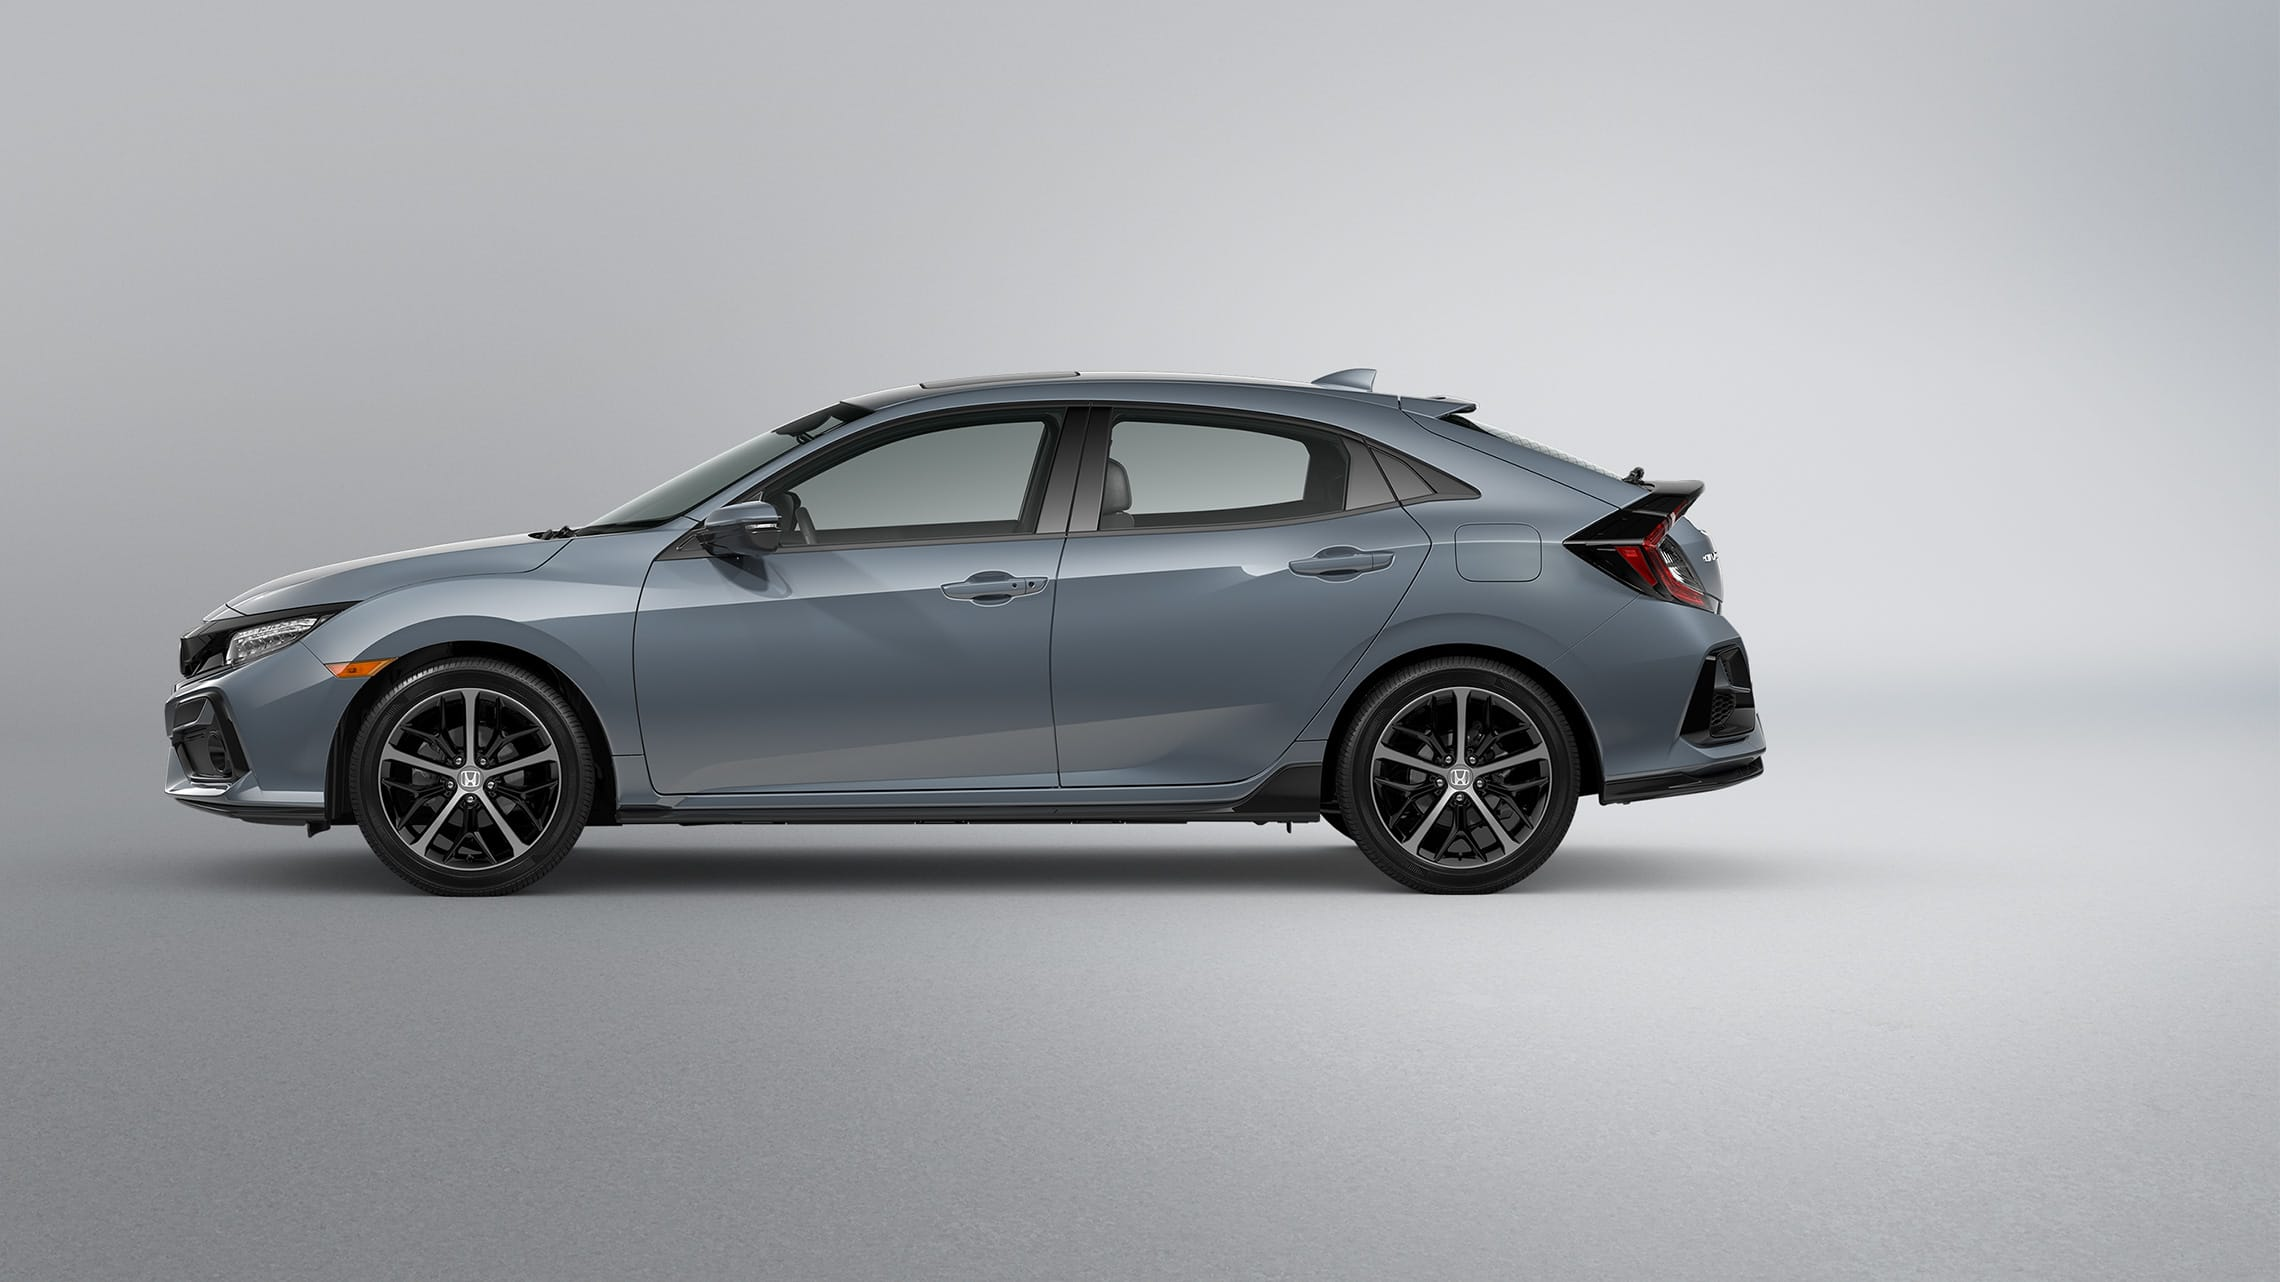 Driver-side profile view of the 2021 Honda Civic Sport Touring Hatchback in Sonic Gray Pearl.